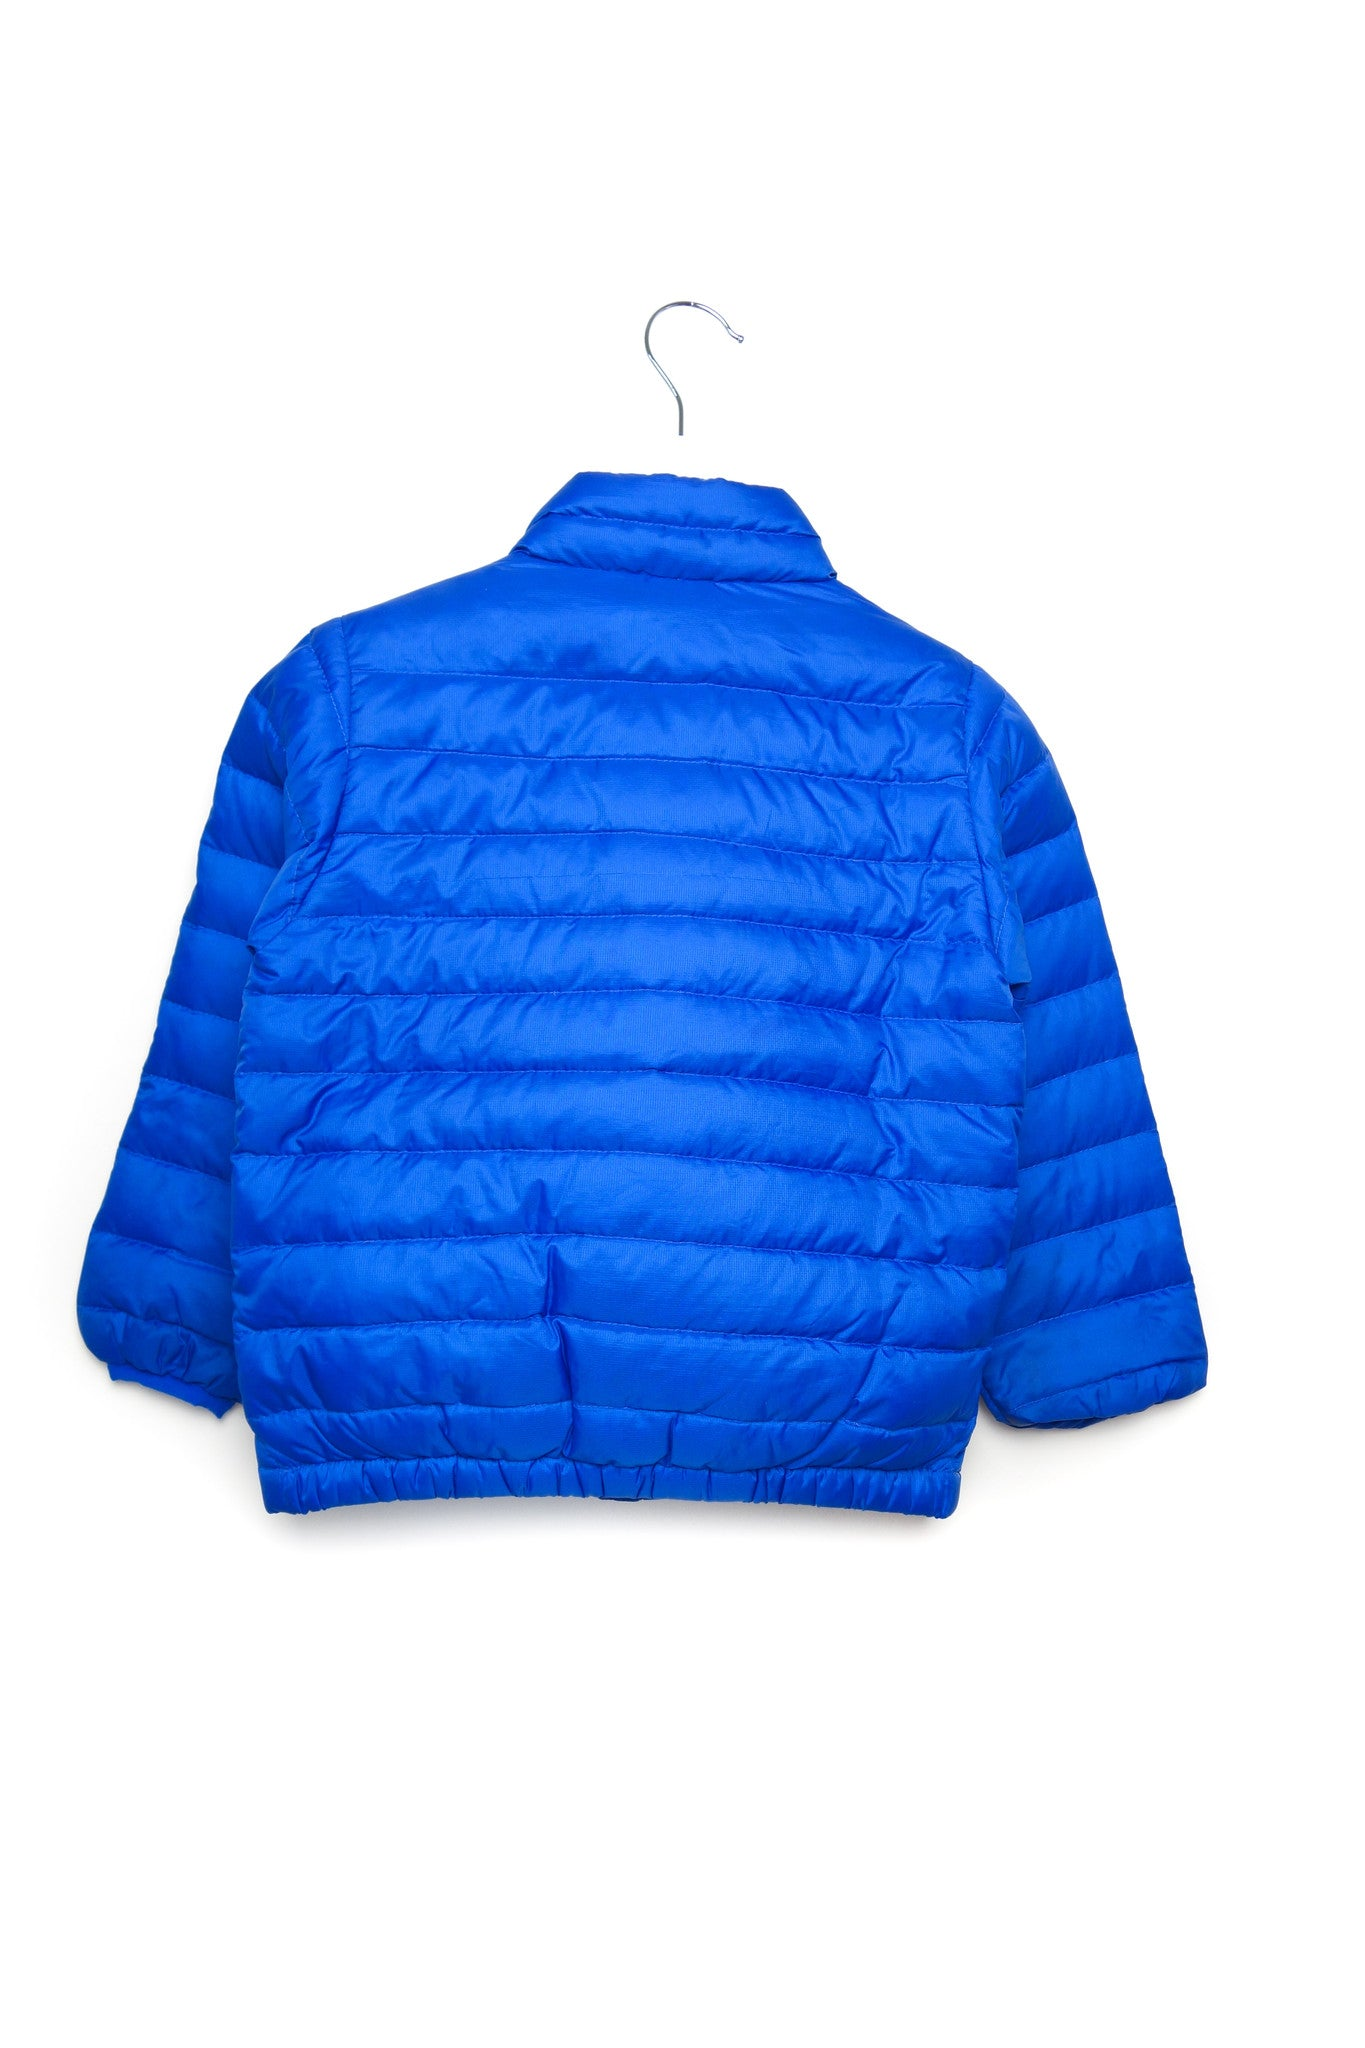 10001534 Patagonia Kids~Puffer Jacket 4T at Retykle